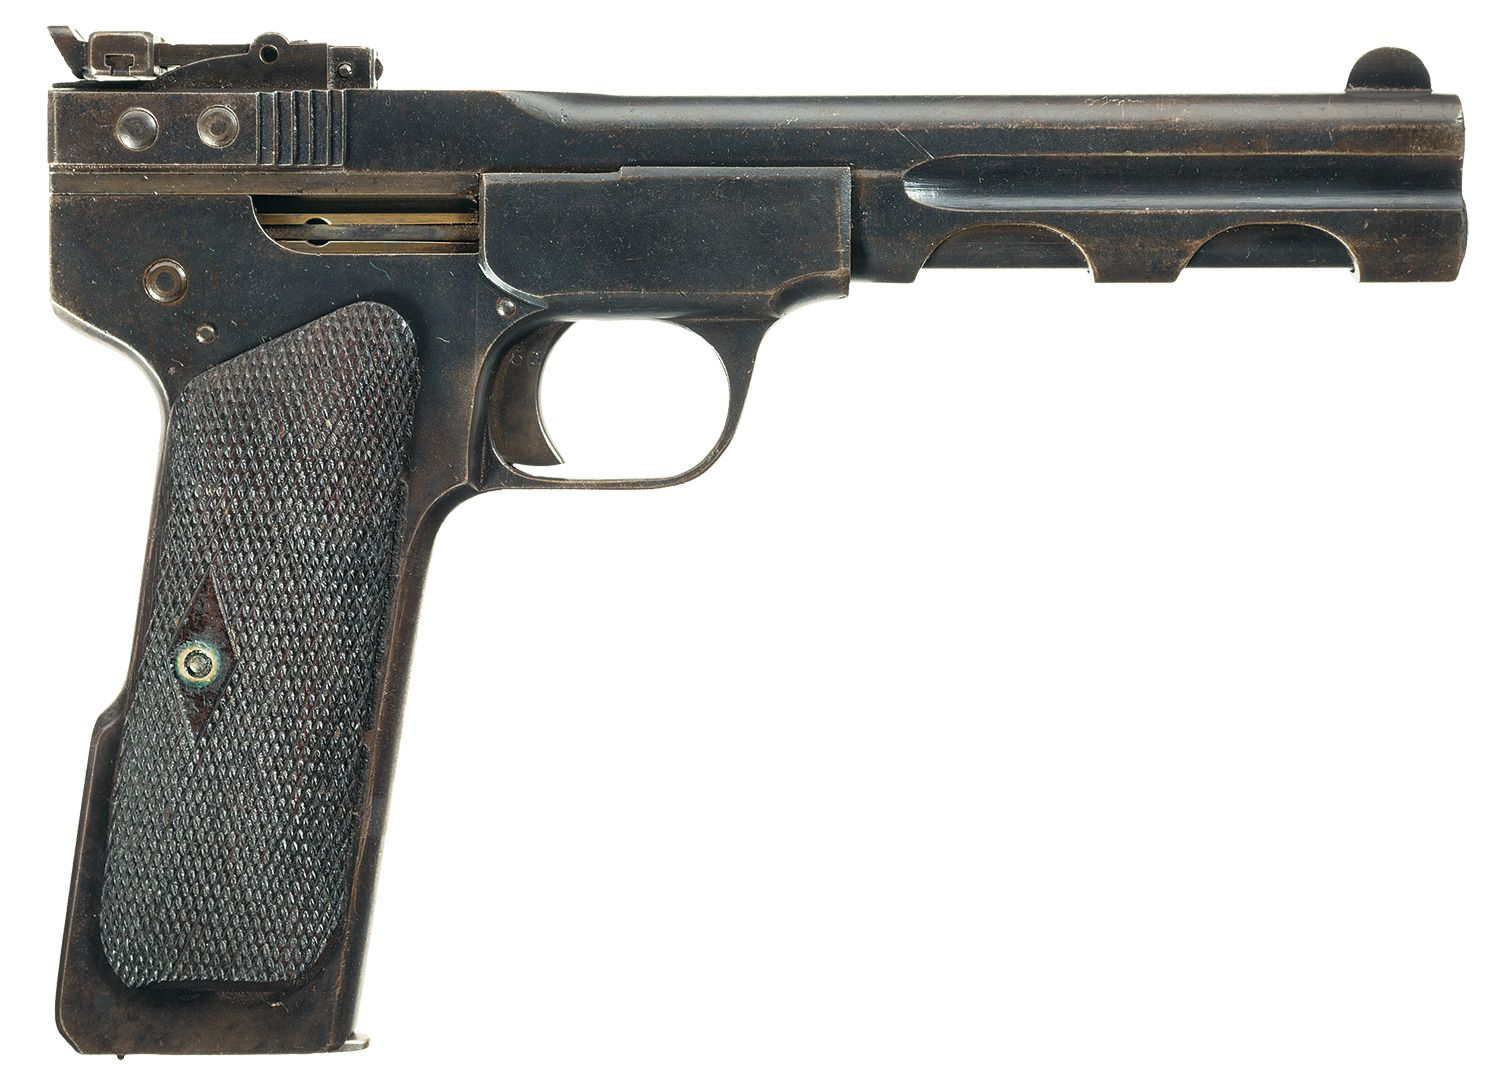 Spp 1 underwater pistol - Unique Chinese Copy Of A Fabrique Nationale Model 1900 Semi Automatic Pistol Slotted For Shoulder